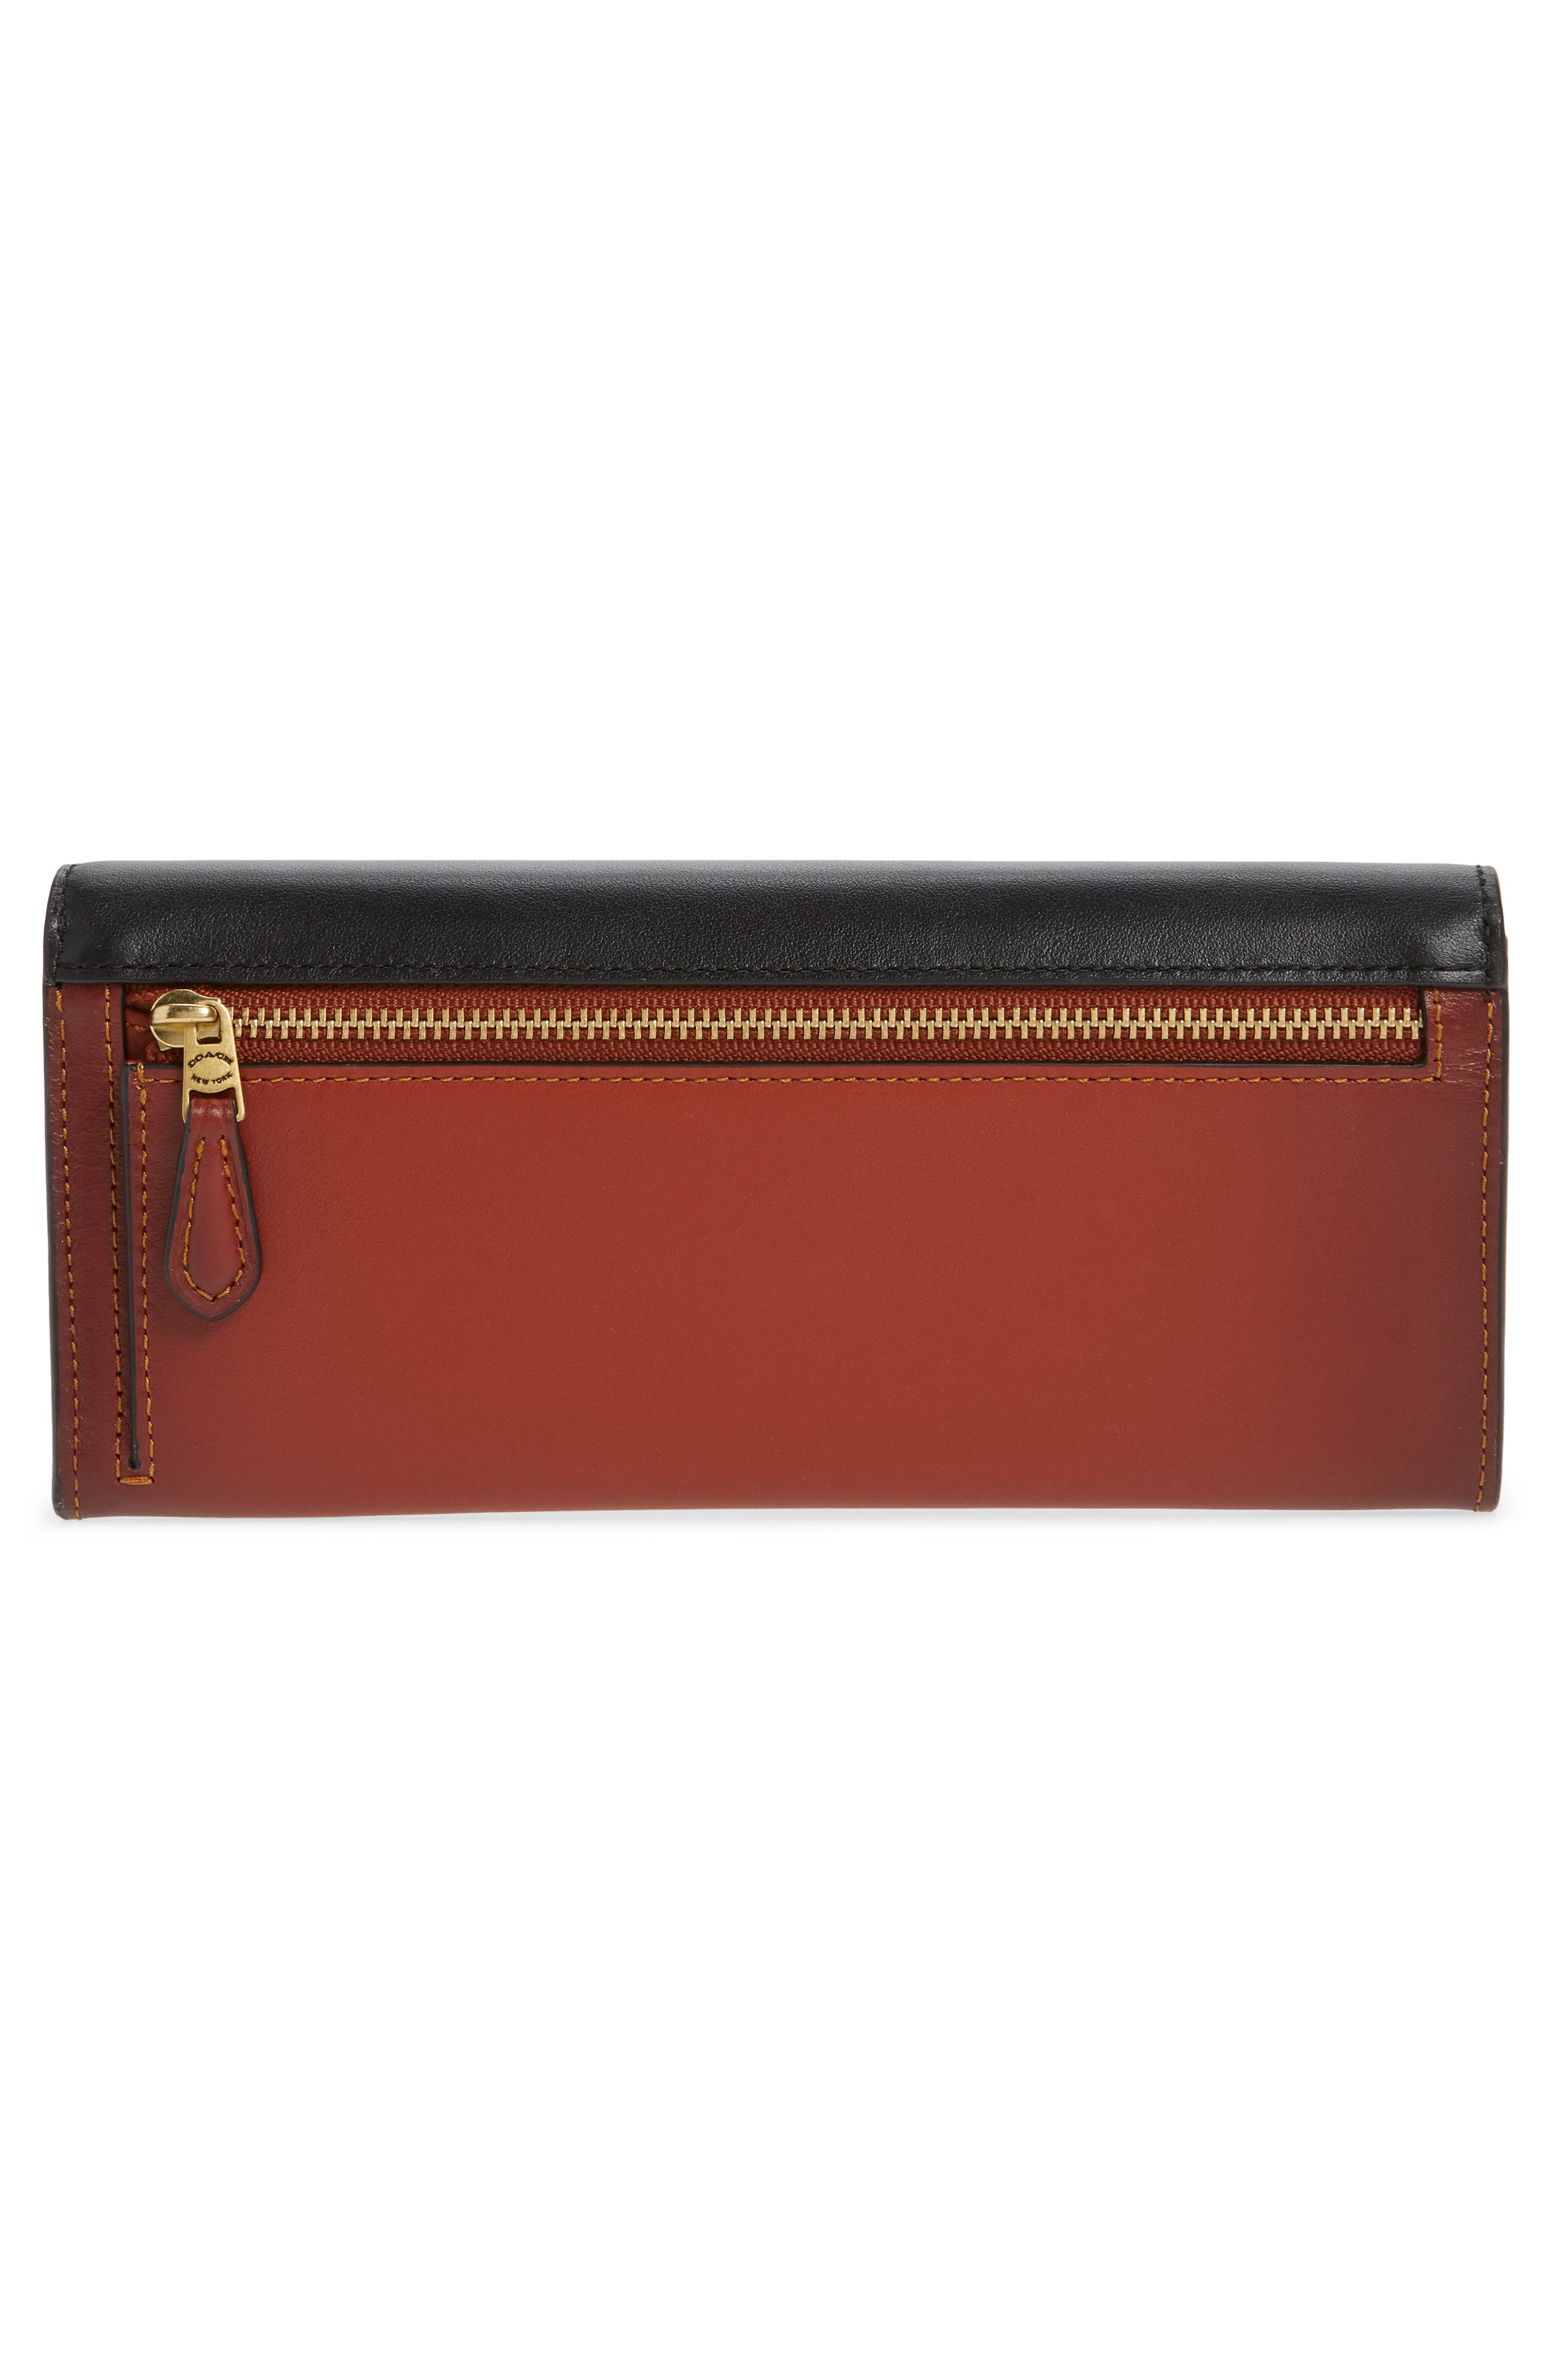 Colorblock Leather & Coated Canvas Wallet,                             Alternate thumbnail 3, color,                             TAN BLACK